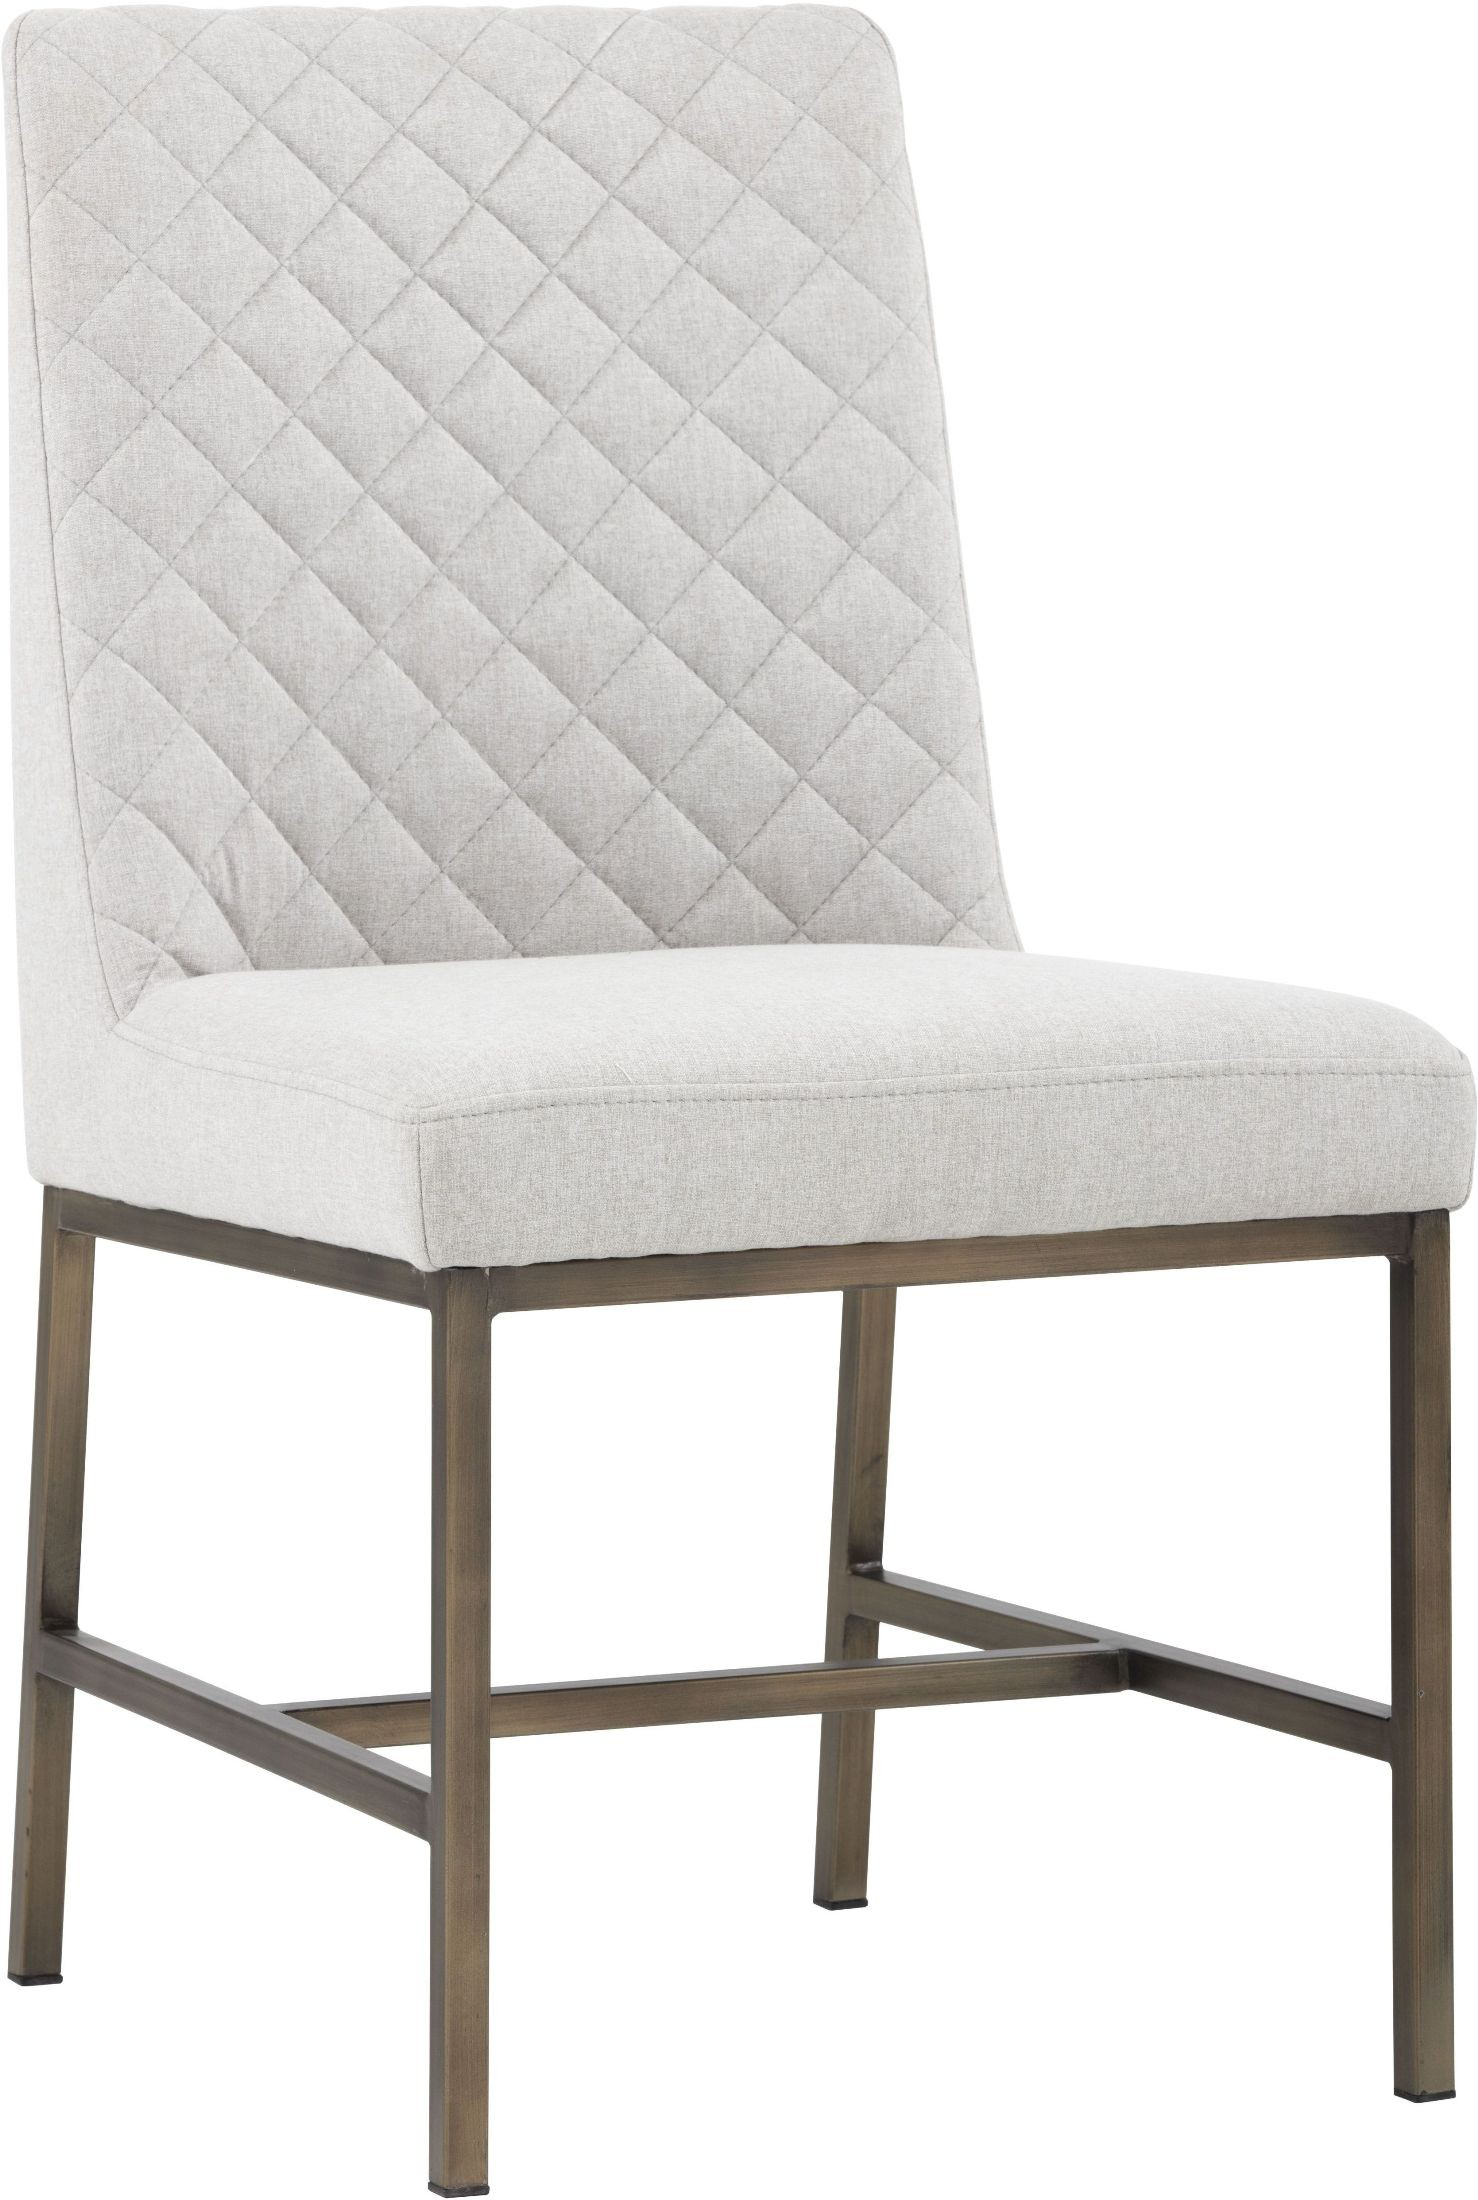 5west Leighland Light Grey Fabric Dining Chair Set Of 2